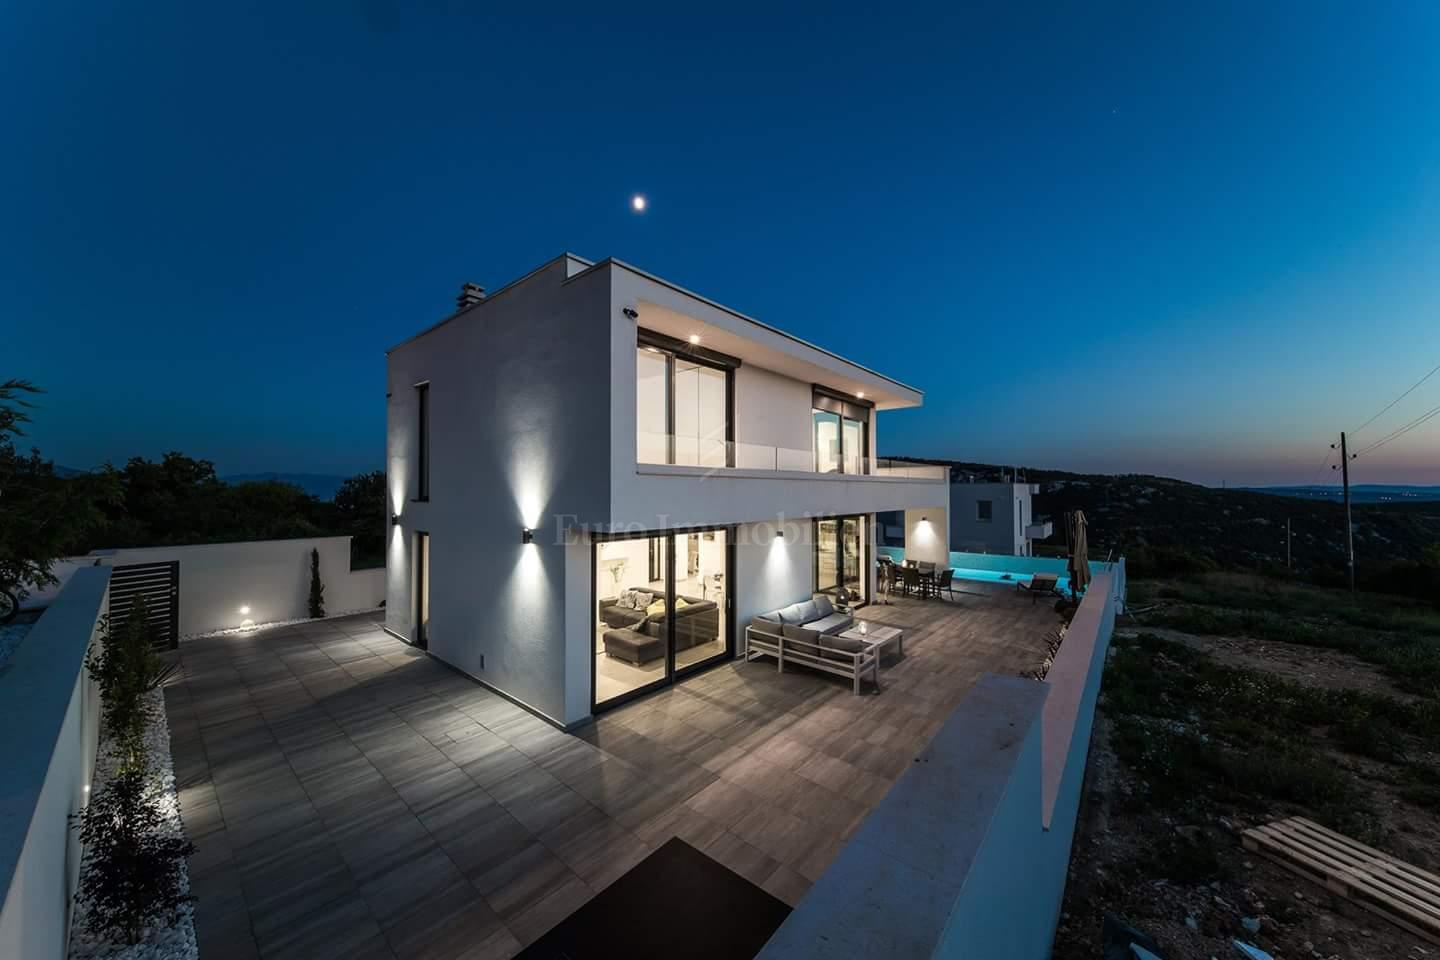 Modern family house is categorized for tourist rent